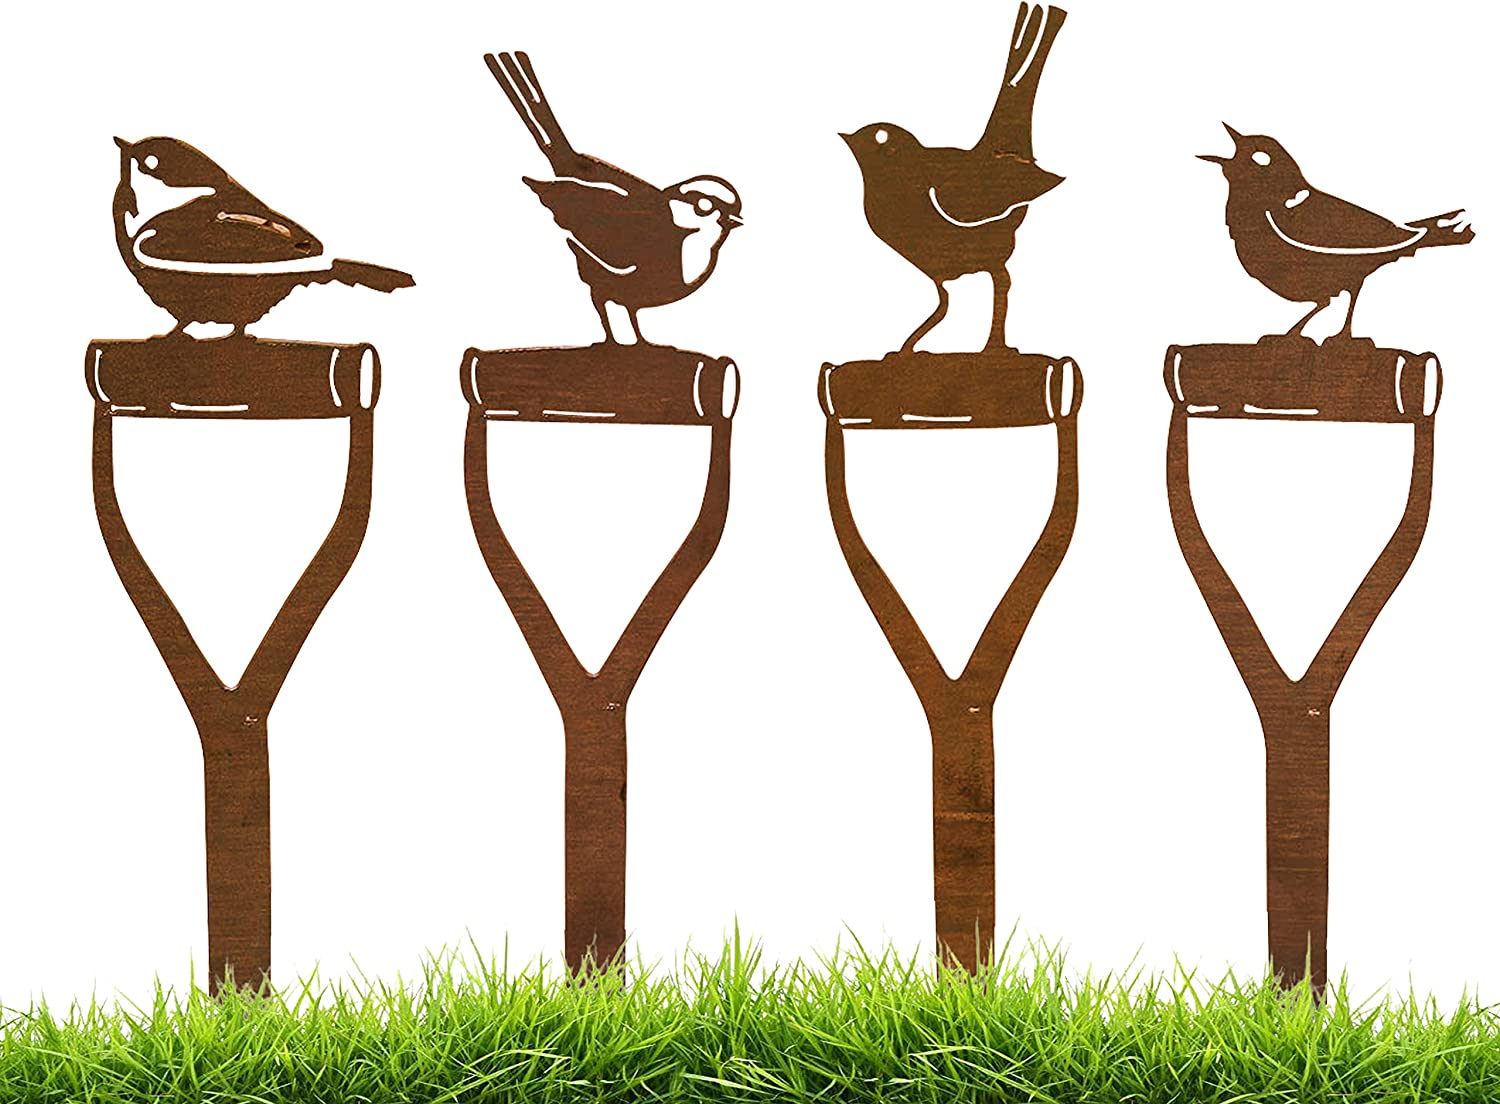 California Home and Garden CH843 Metal Rustic Rust Set of 4 Large Shovel Birds, 5 Inch Tall, Brownish Red